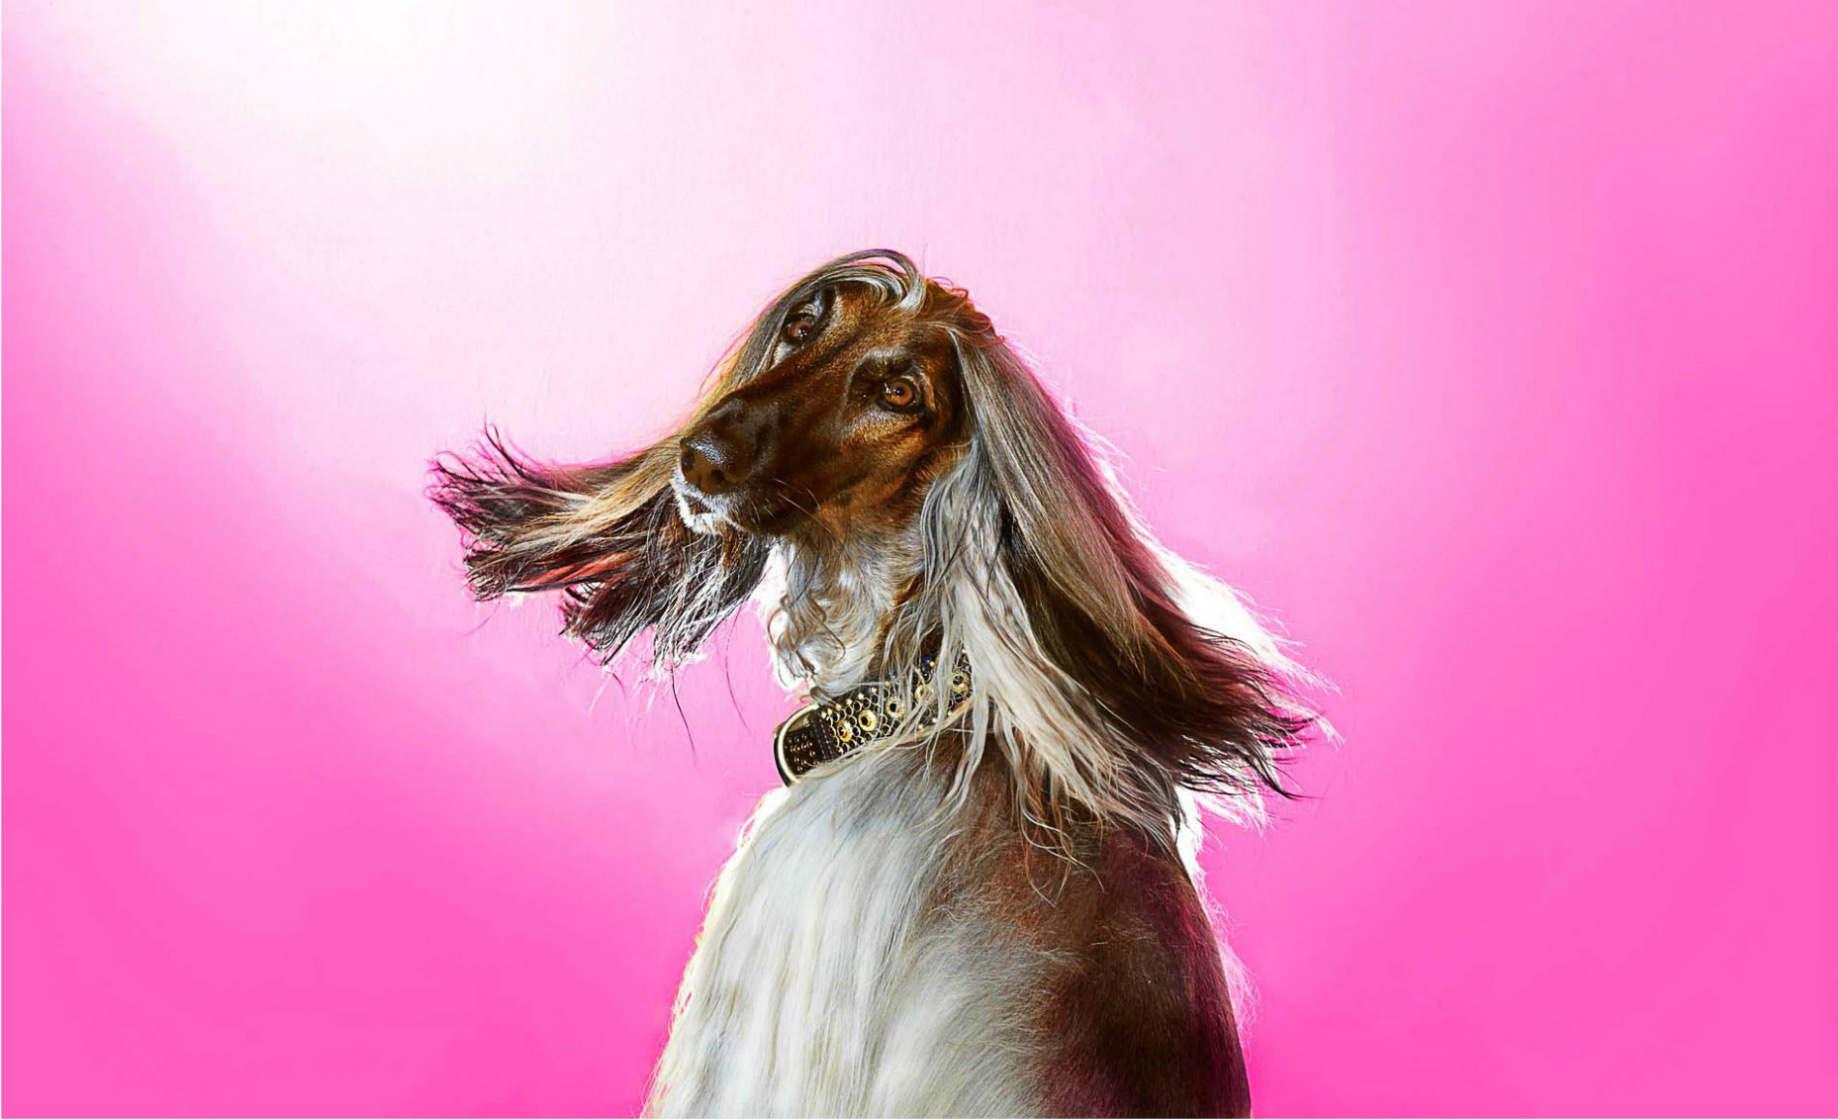 Afghan Hound turning head against pink background with hair sweeping in the wind. Copyright Gandee Vasan